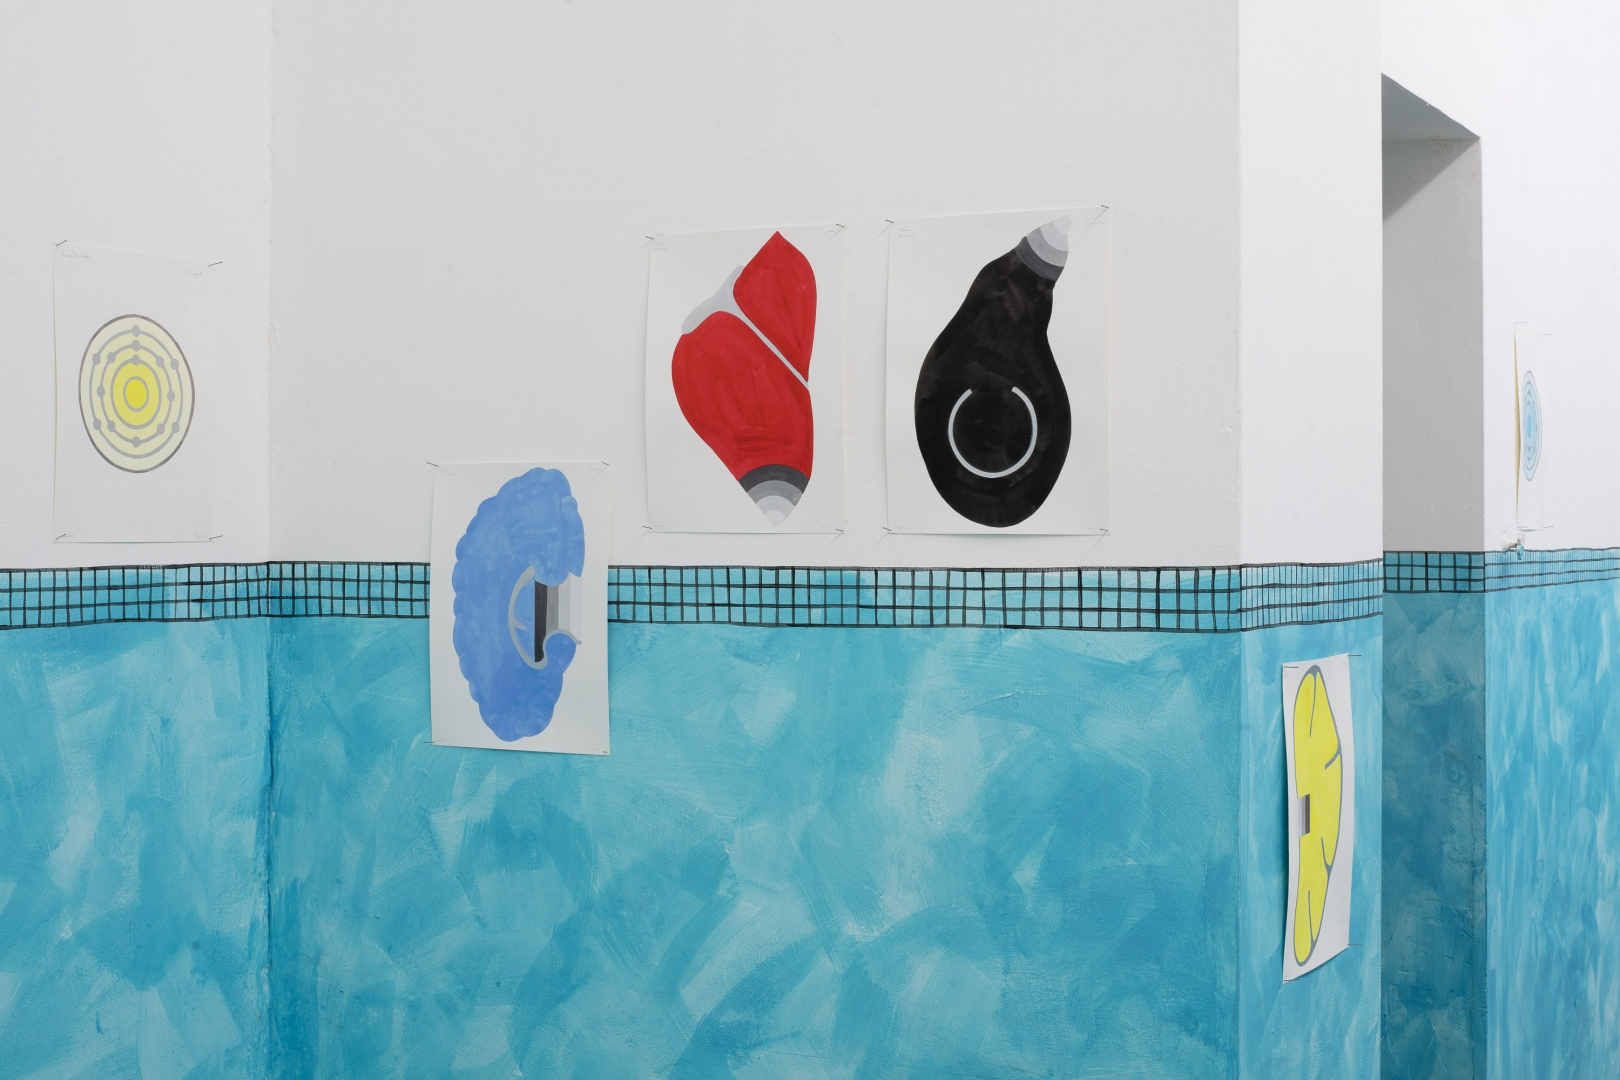 Navine G. Khan Dossos, Pool Paintings Part I, 2020 (2018)